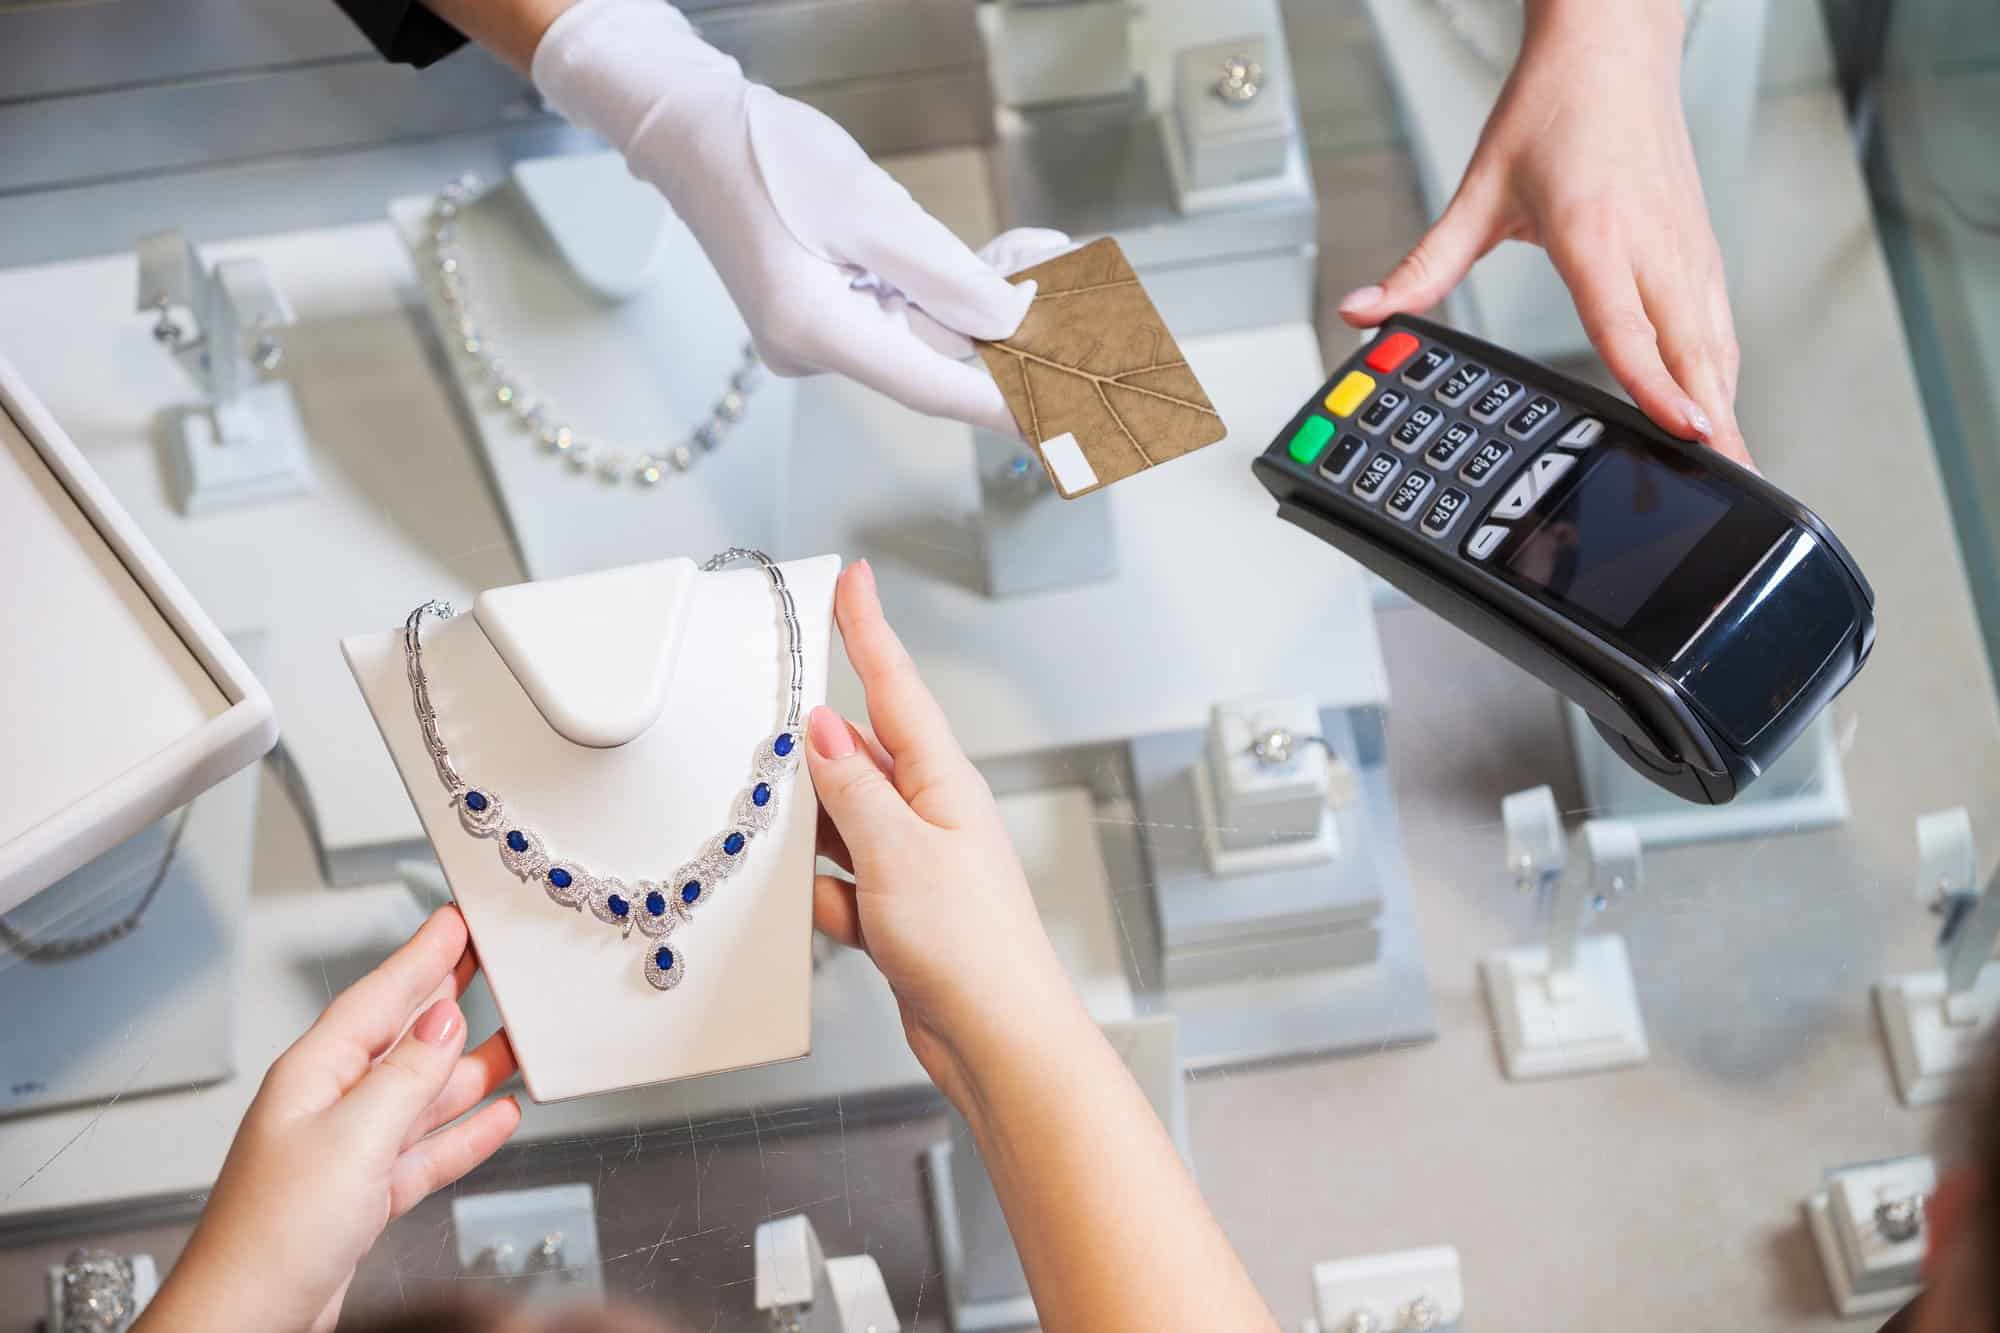 Setting up for Success: 8 Common Mistakes While Setting up Point of Sale Machines